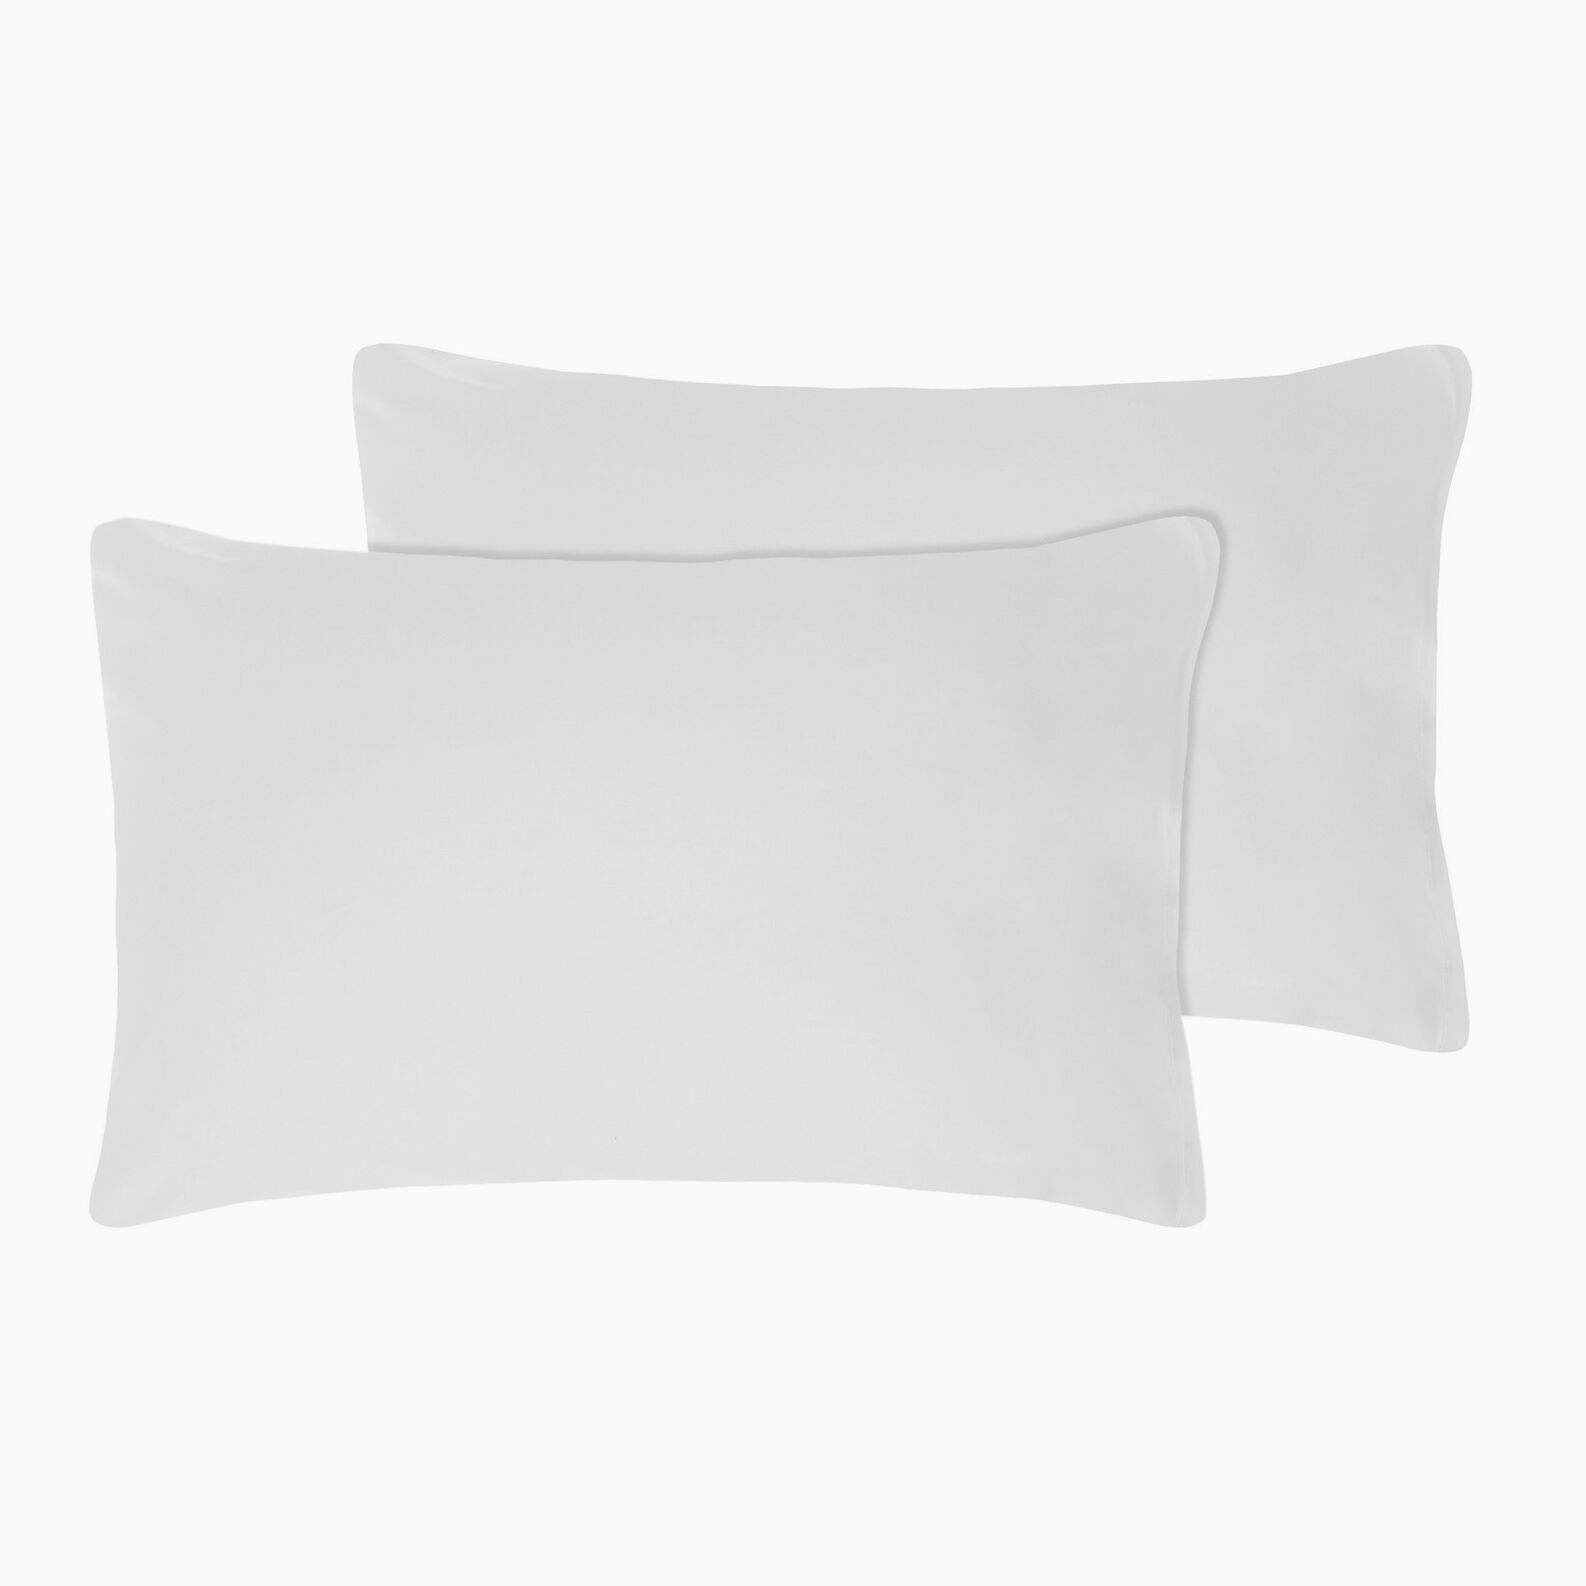 Set of 2 percale pillowcases